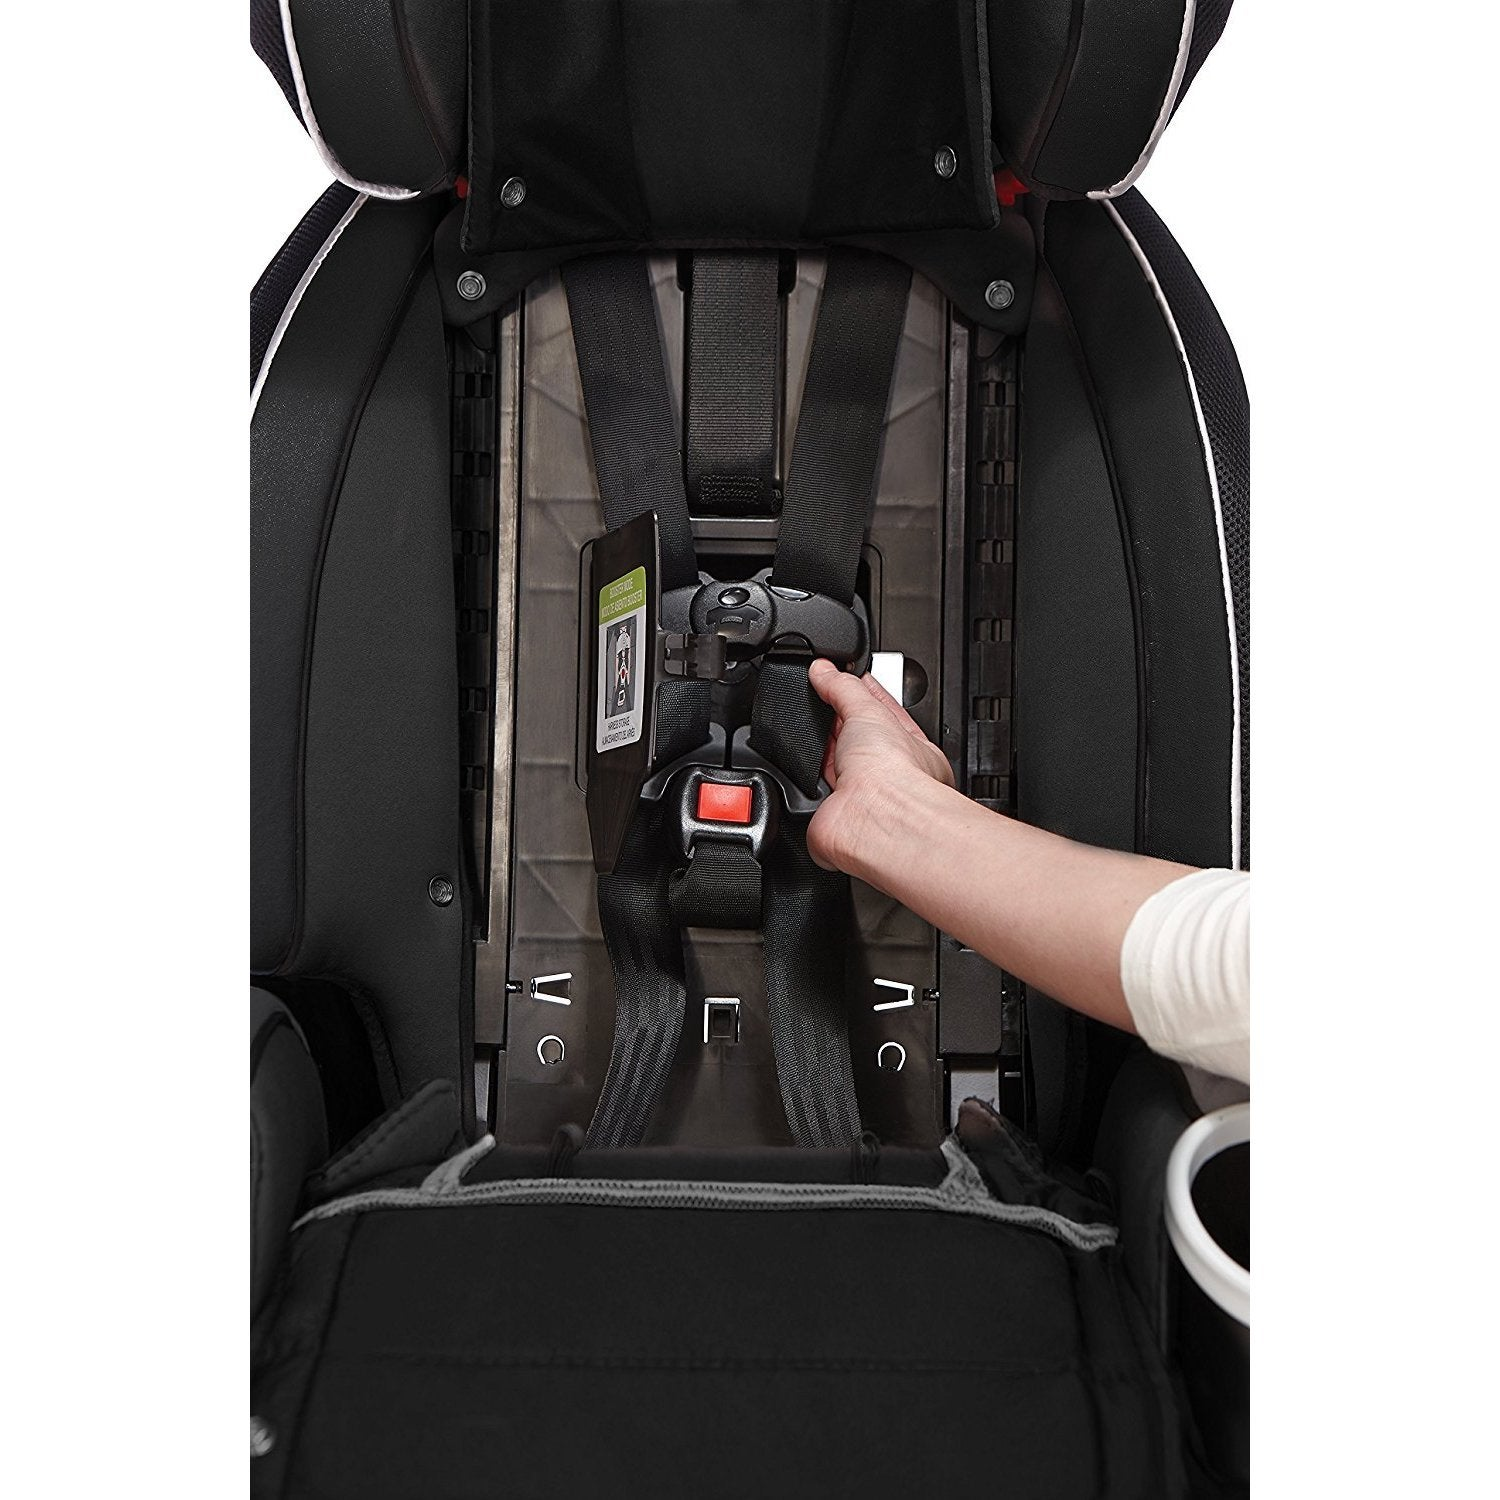 fa3a0b461626 Shop Graco Matrix 4Ever All-in-one Car Seat - Free Shipping Today -  Overstock - 11597656